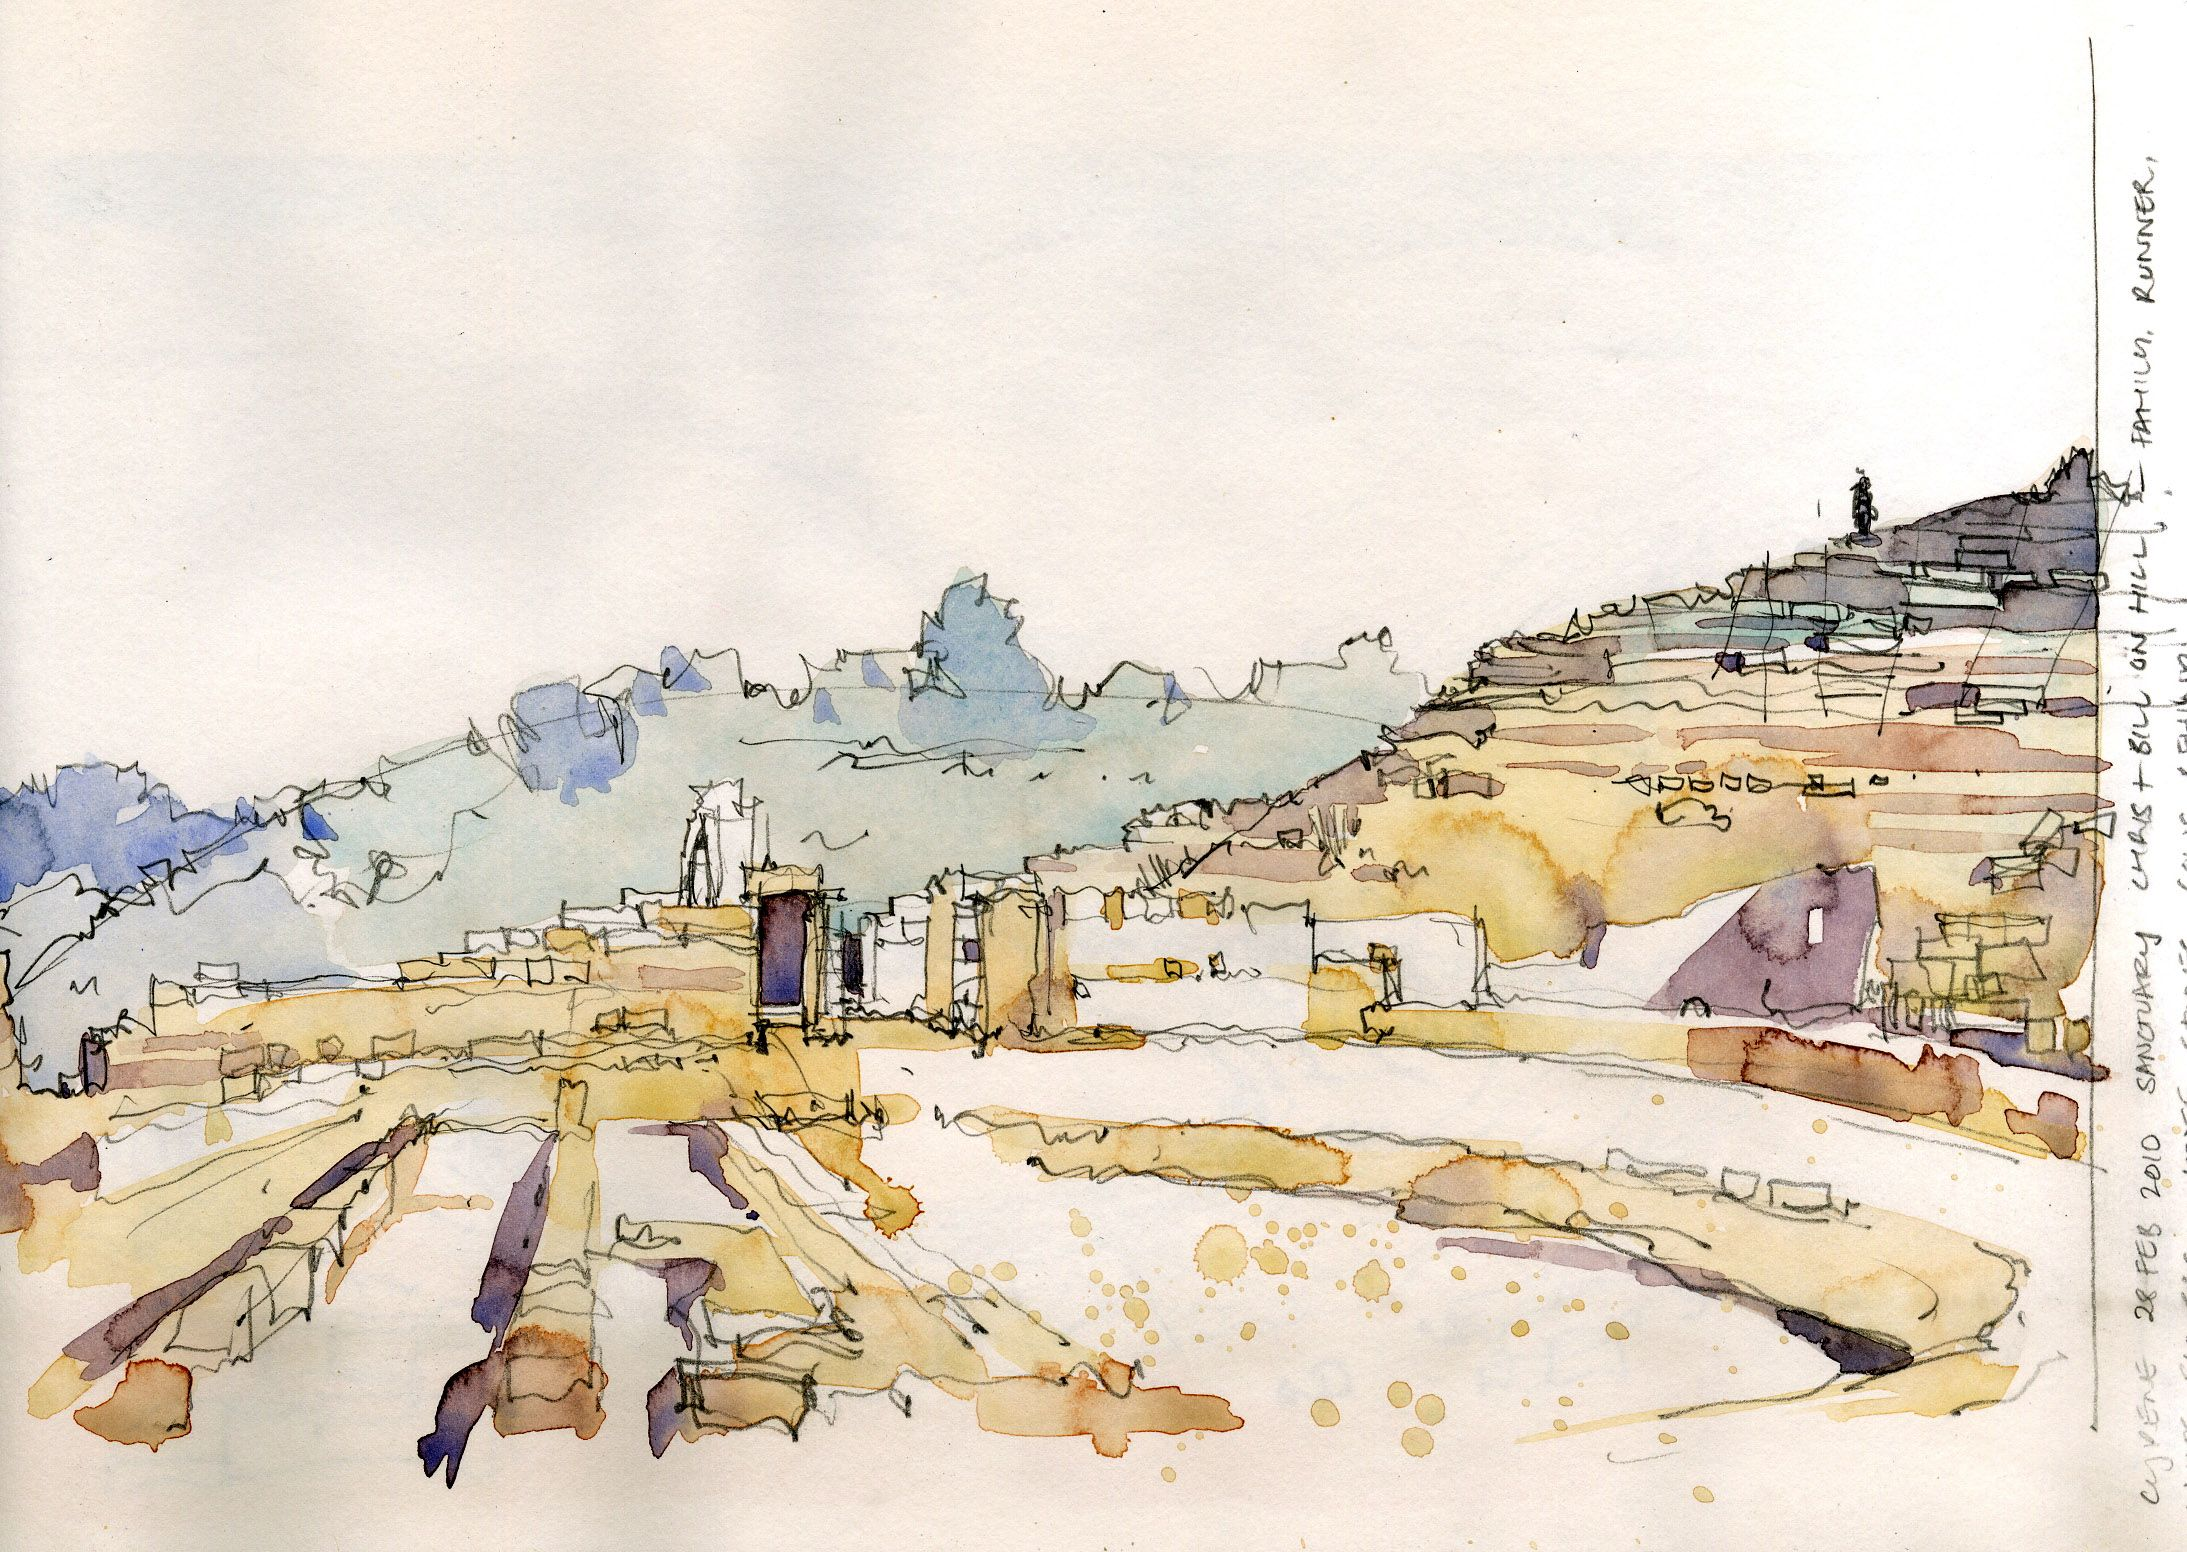 Watercolour Sketch - Amphitheatre at Cyrene, Green Mountains, Libya www.nickhirst.co.uk